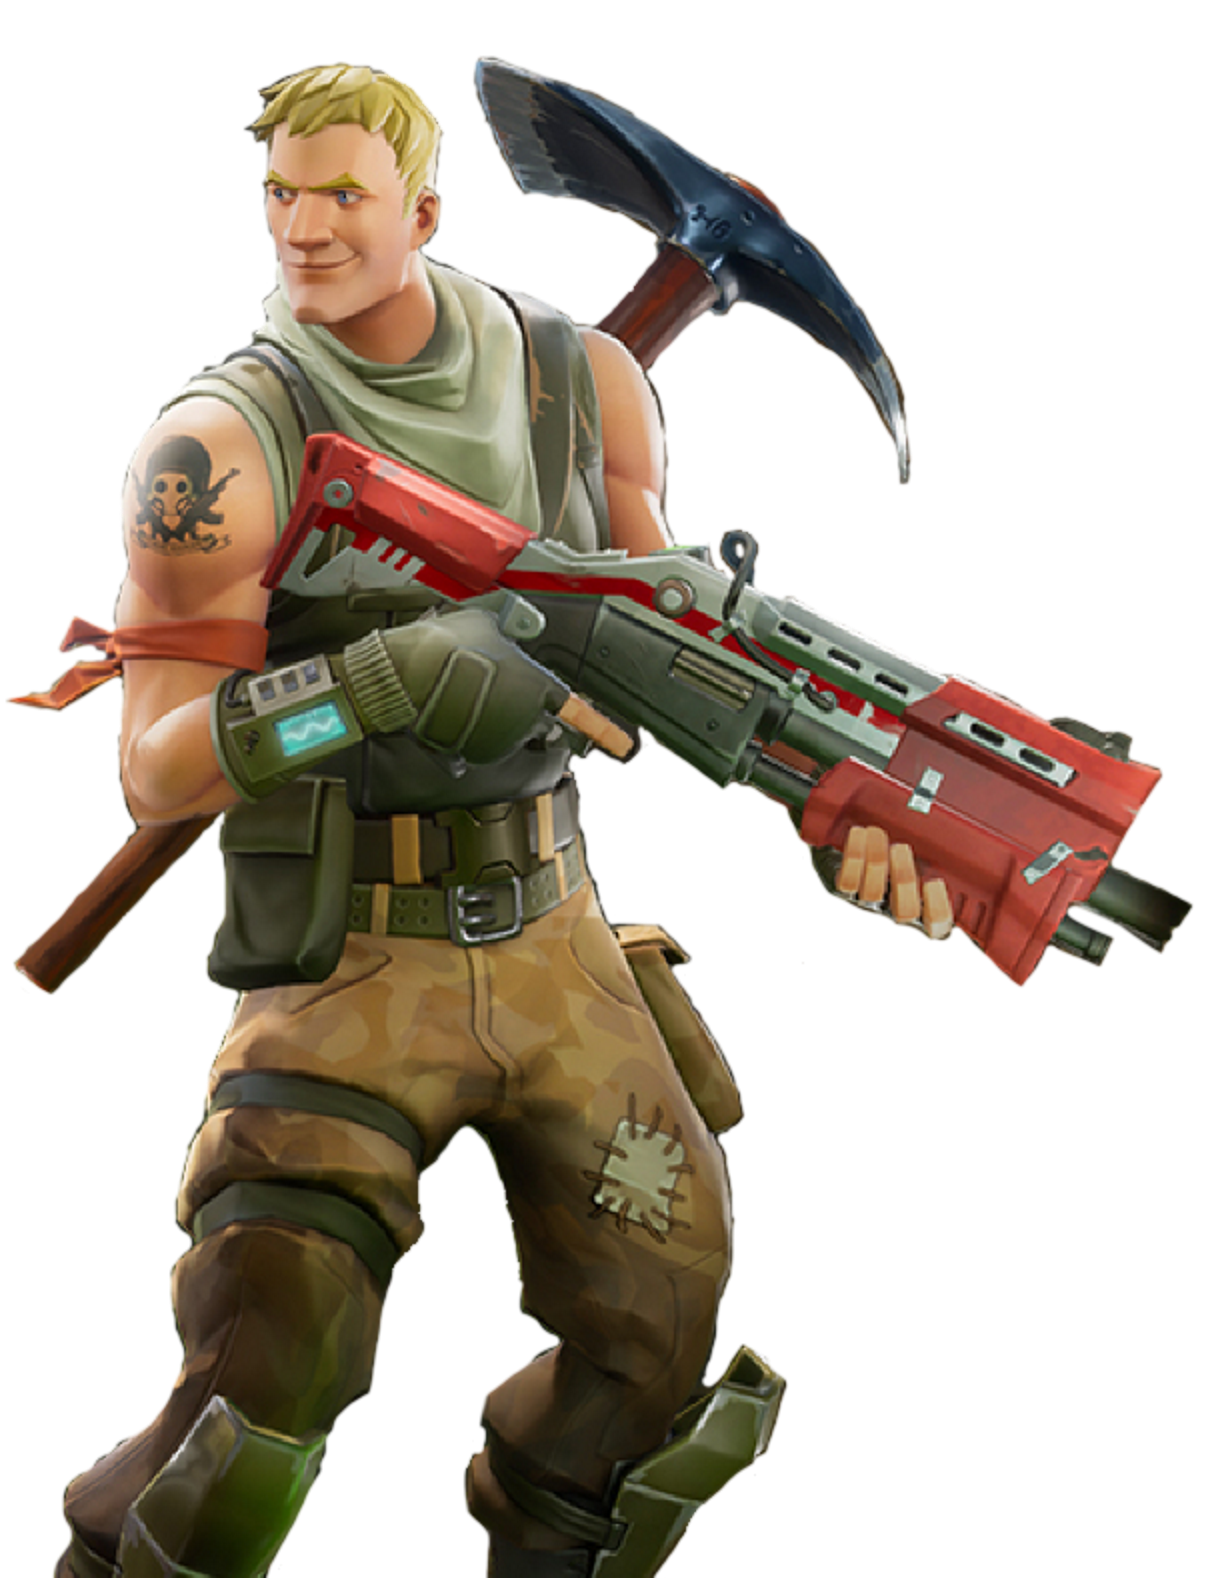 Default Skin Png Fortnite & Free Default Skin Fortnite.png.